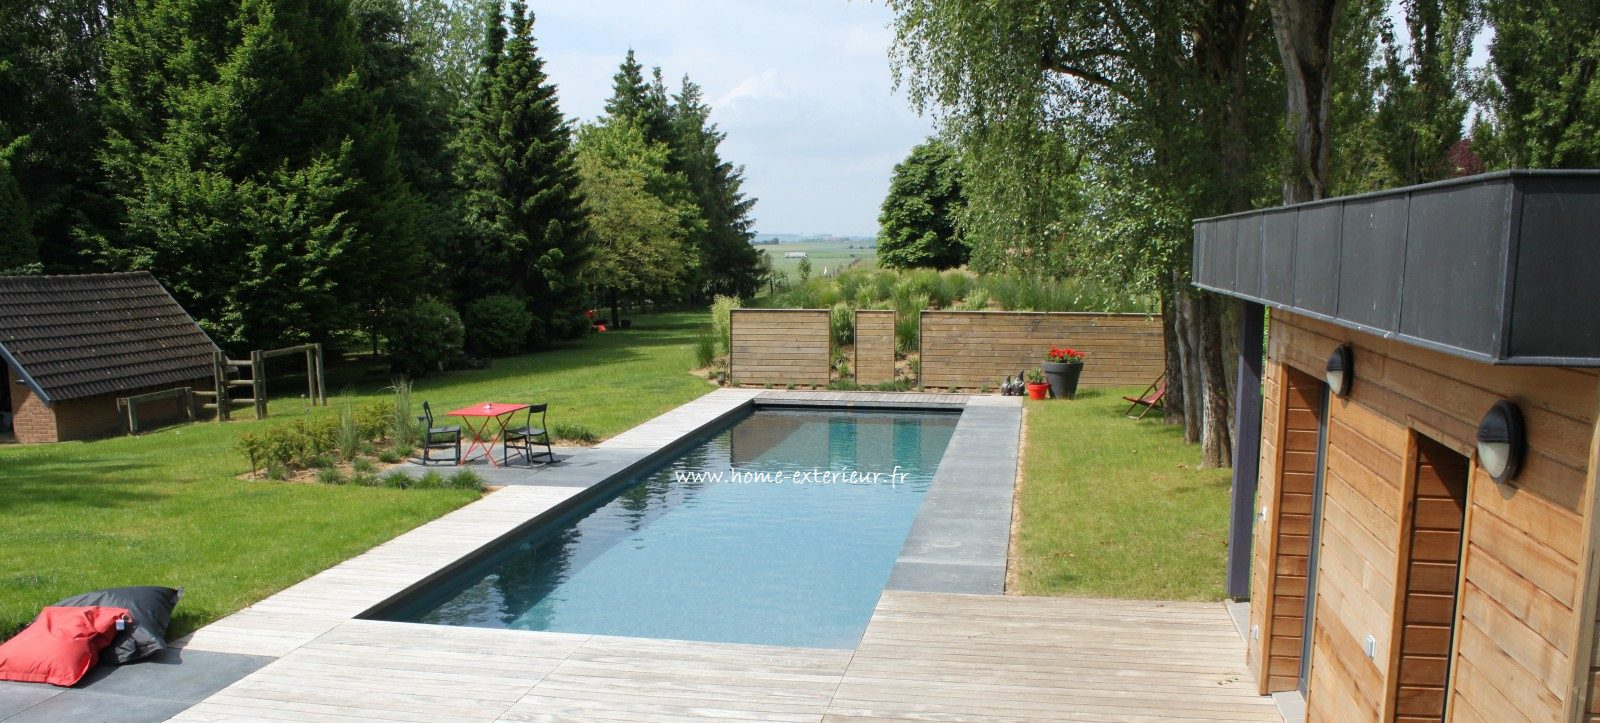 Architecte paysagiste terrasses jardins nord lille for Amenagement piscine exterieur